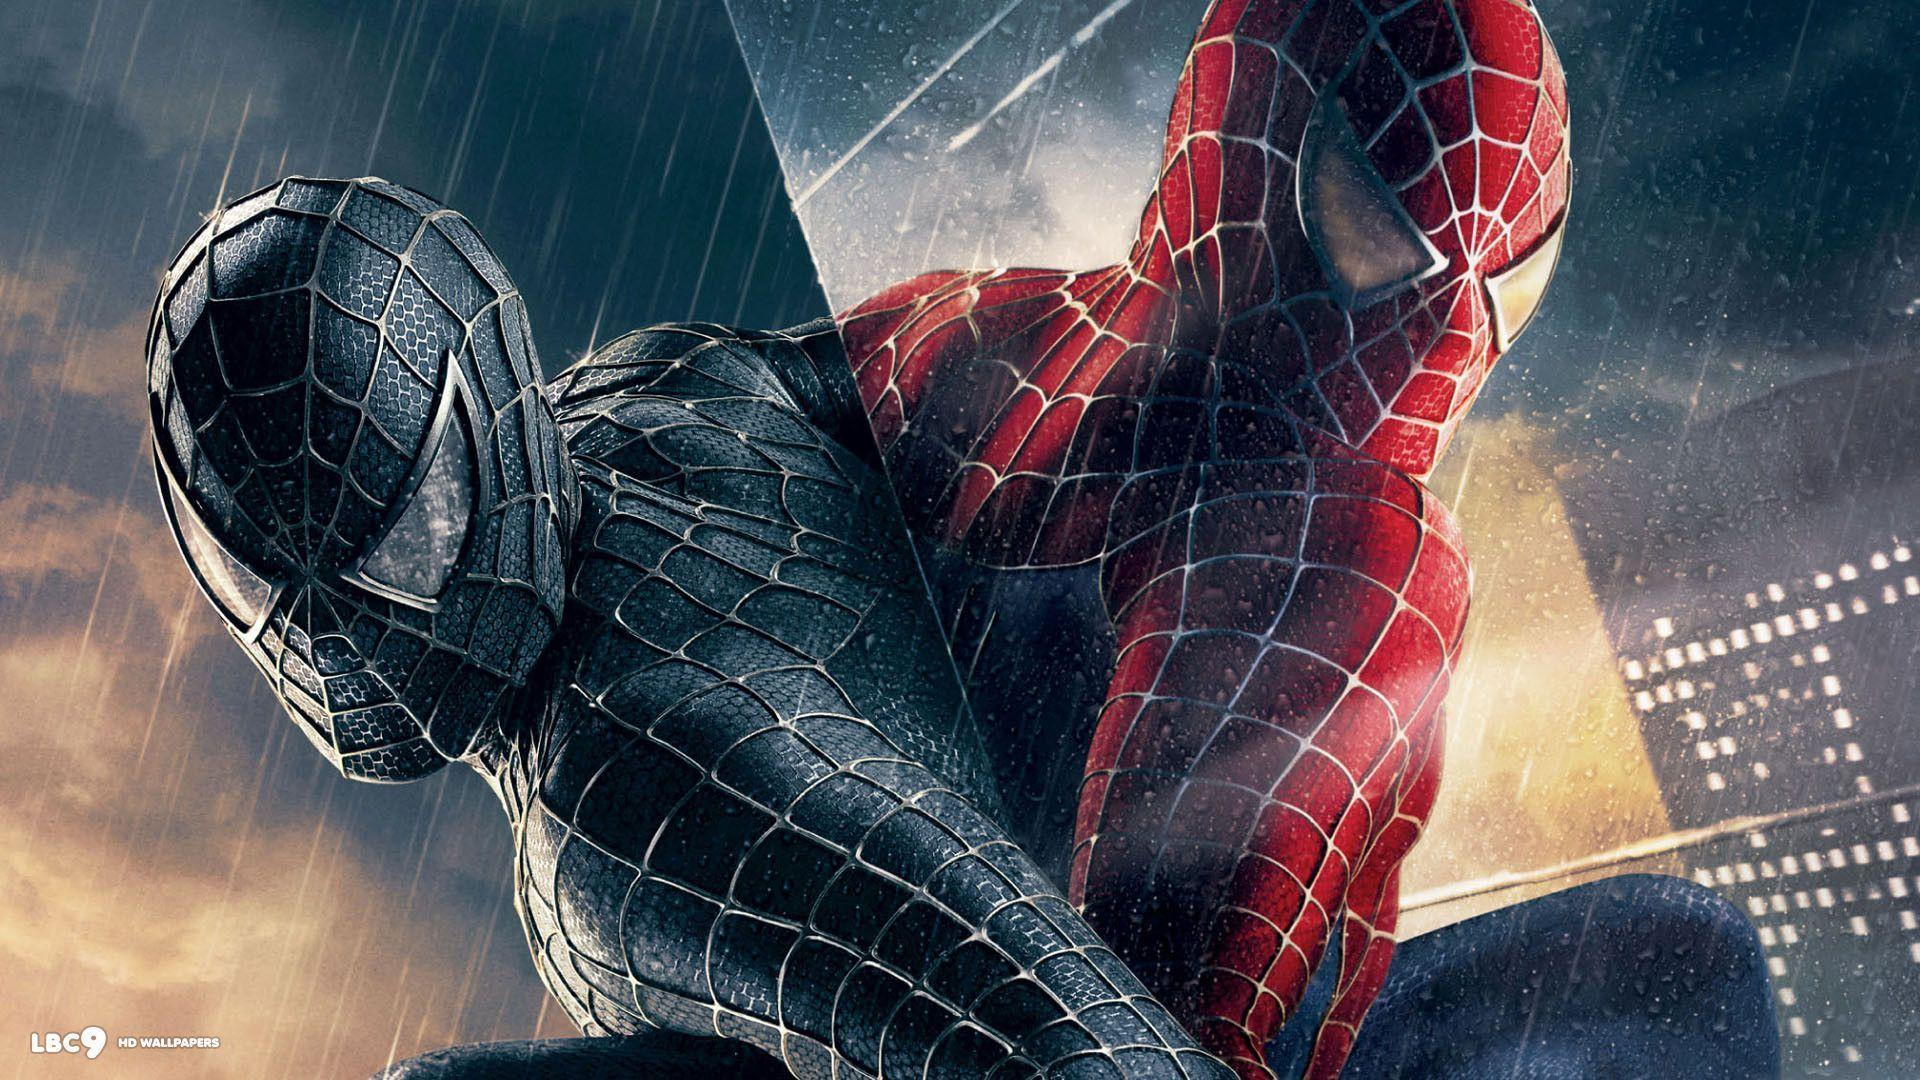 Spider Man 4 Wallpapers Top Free Spider Man 4 Backgrounds